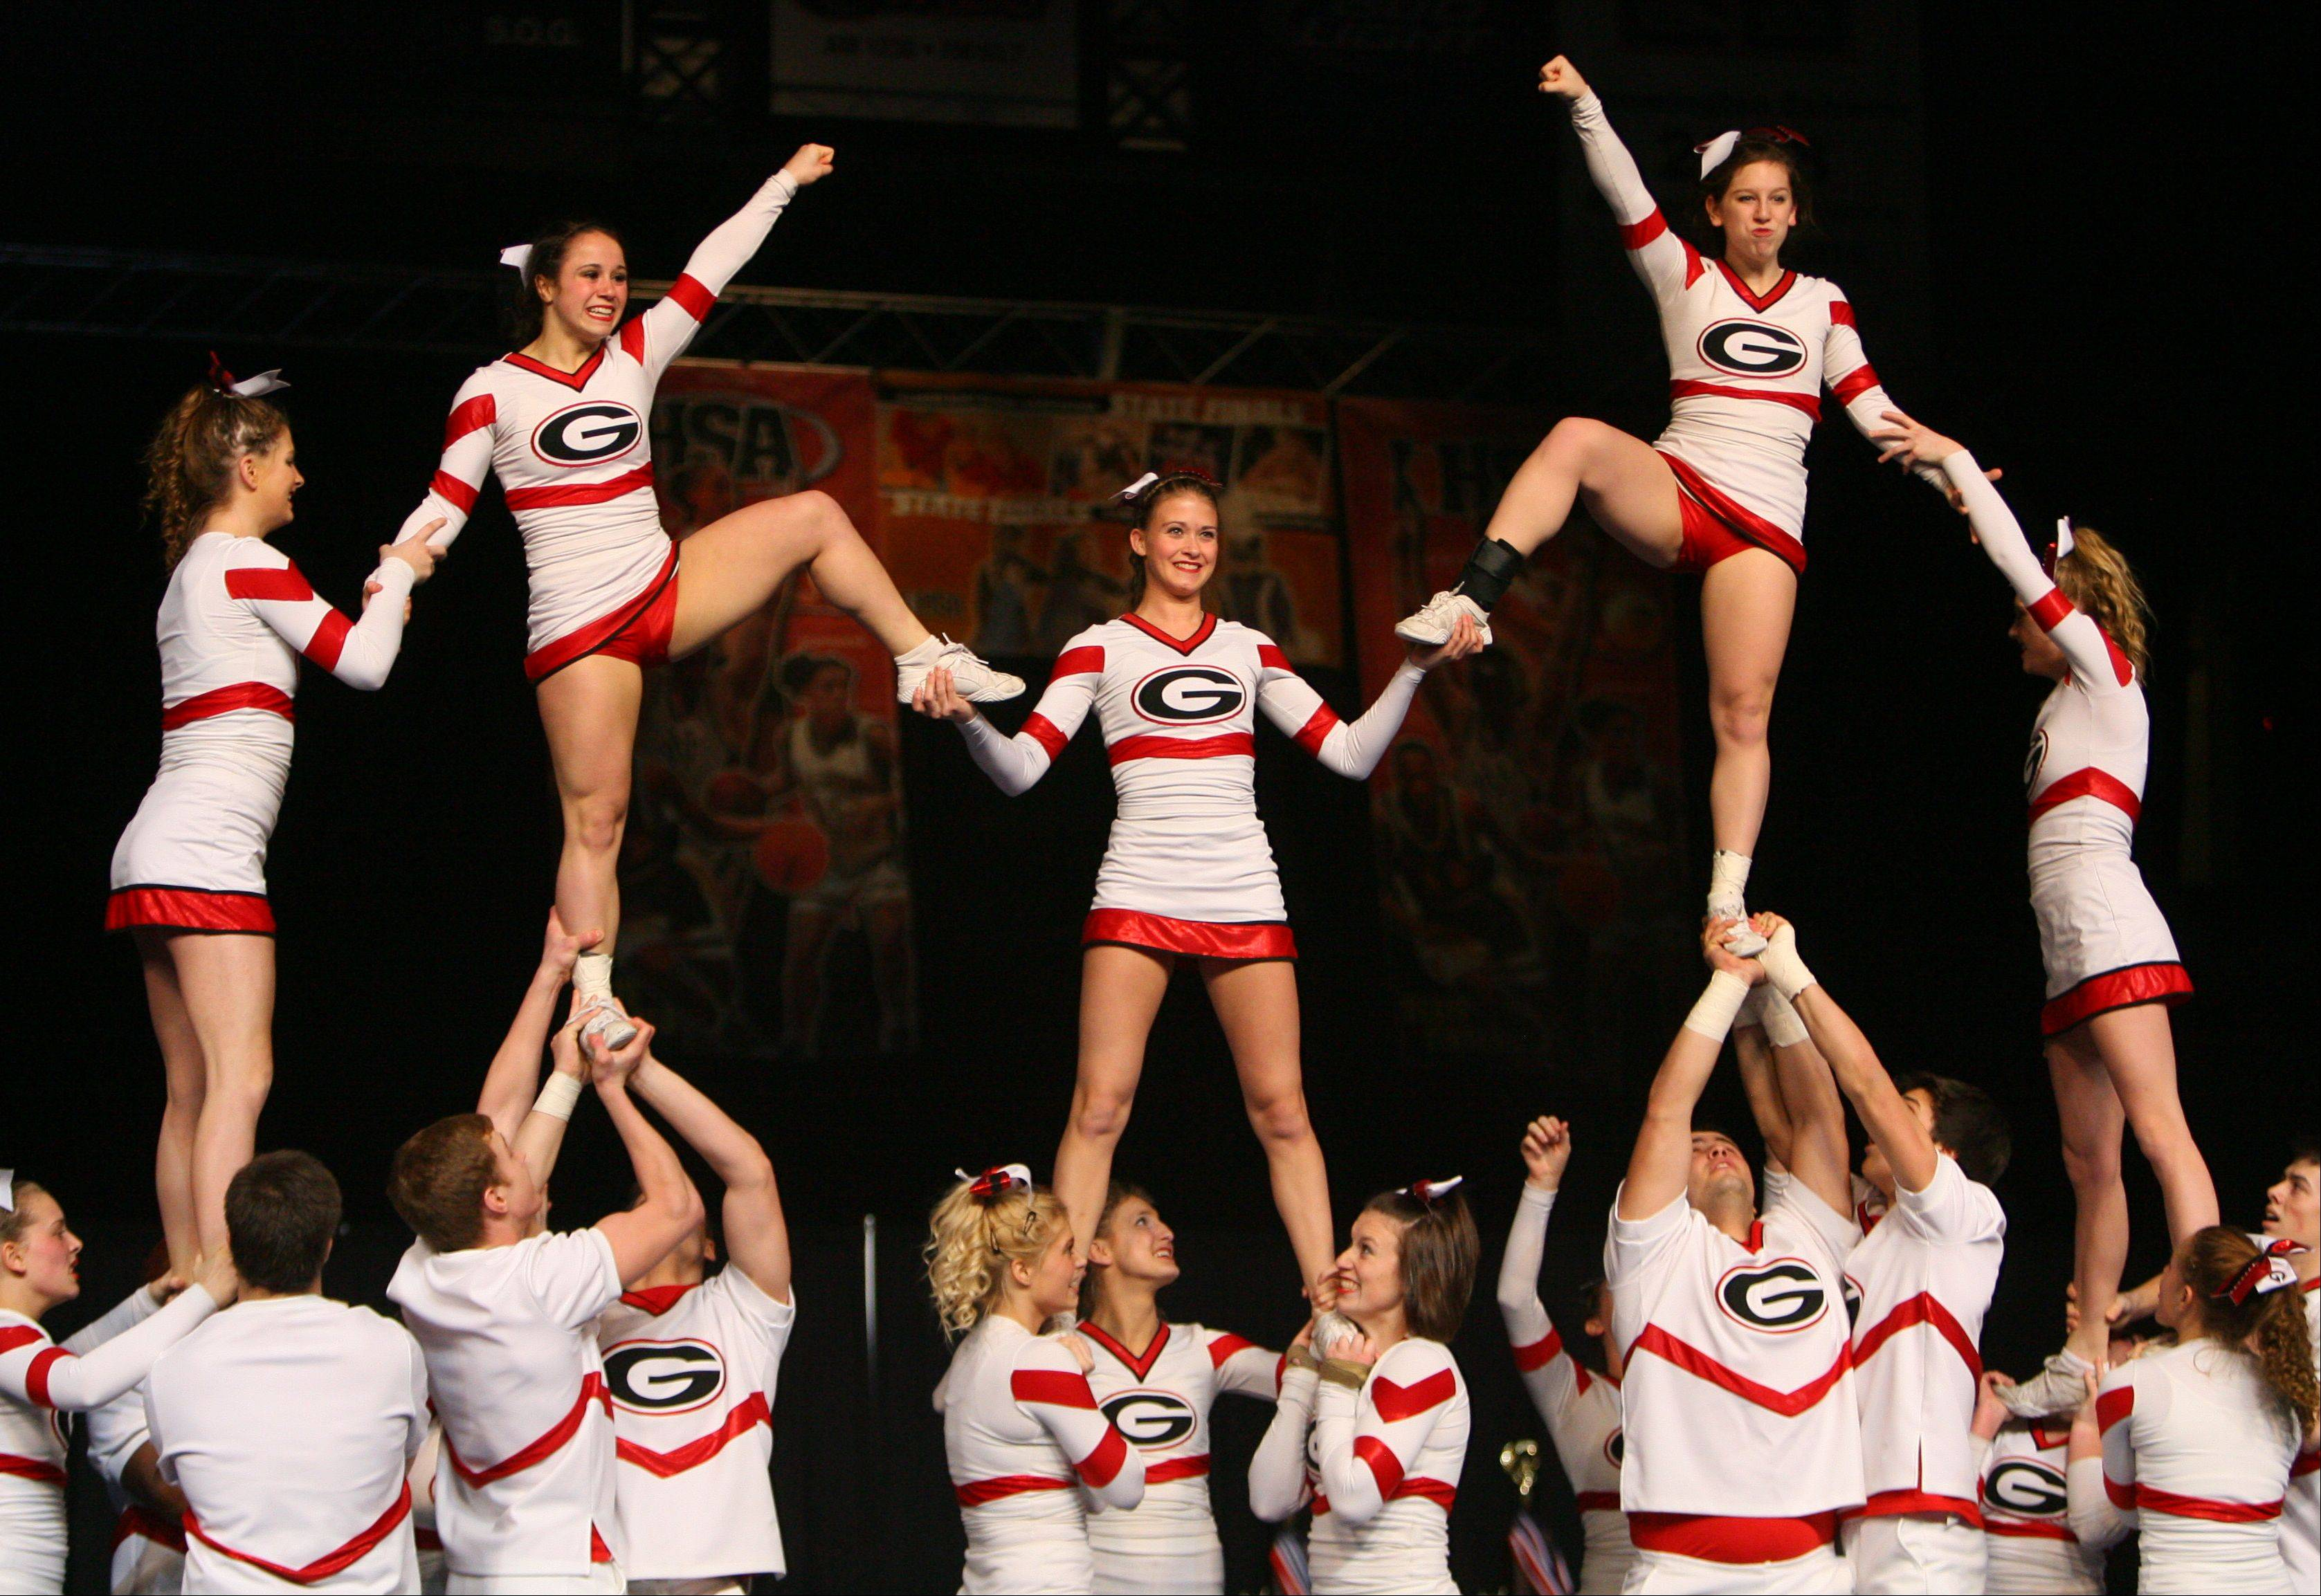 Grant High School participates in the IHSA Competitive Cheerleading finals on Saturday, Feb. 2 at the U.S. Cellular Coliseum in Bloomington.